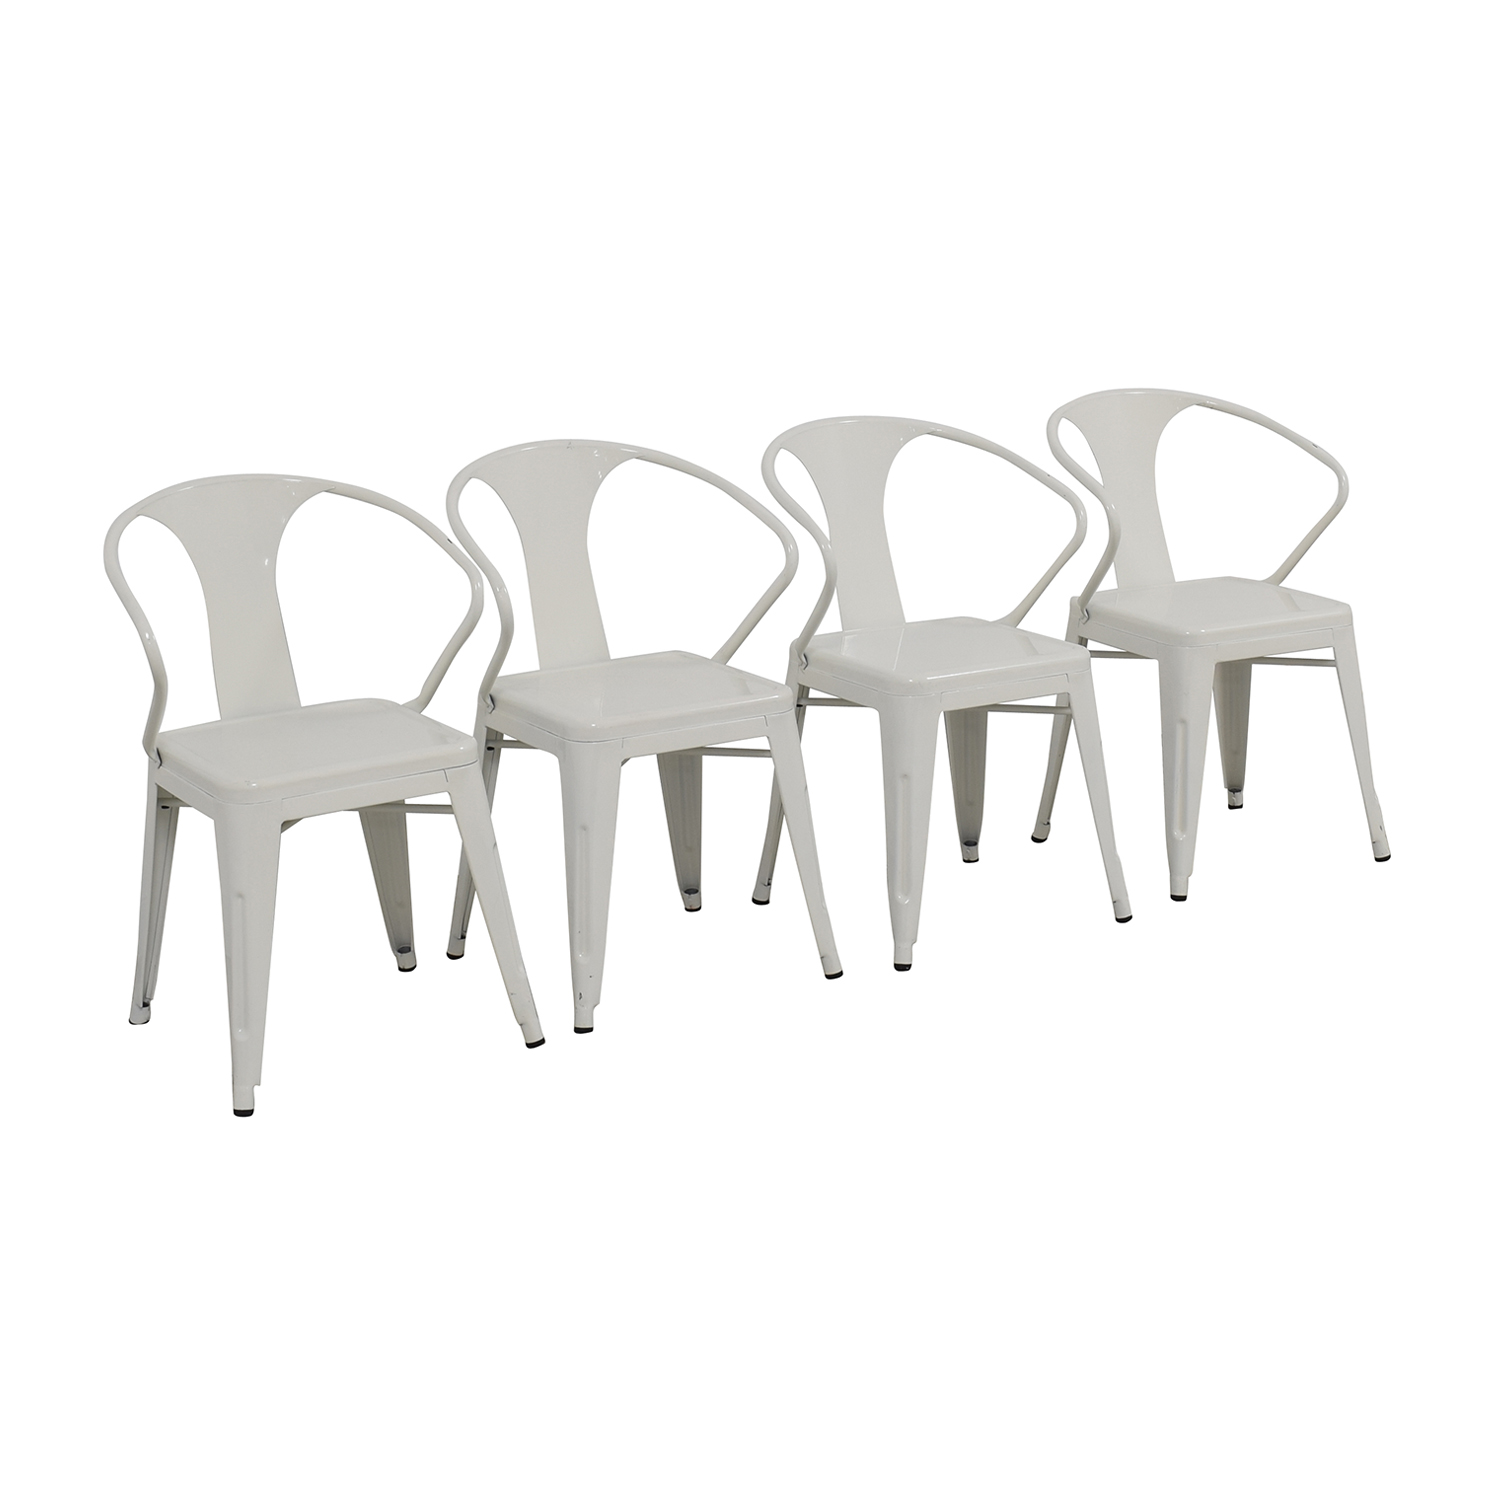 74 OFF  Overstock Overstock White European Chairs  Chairs